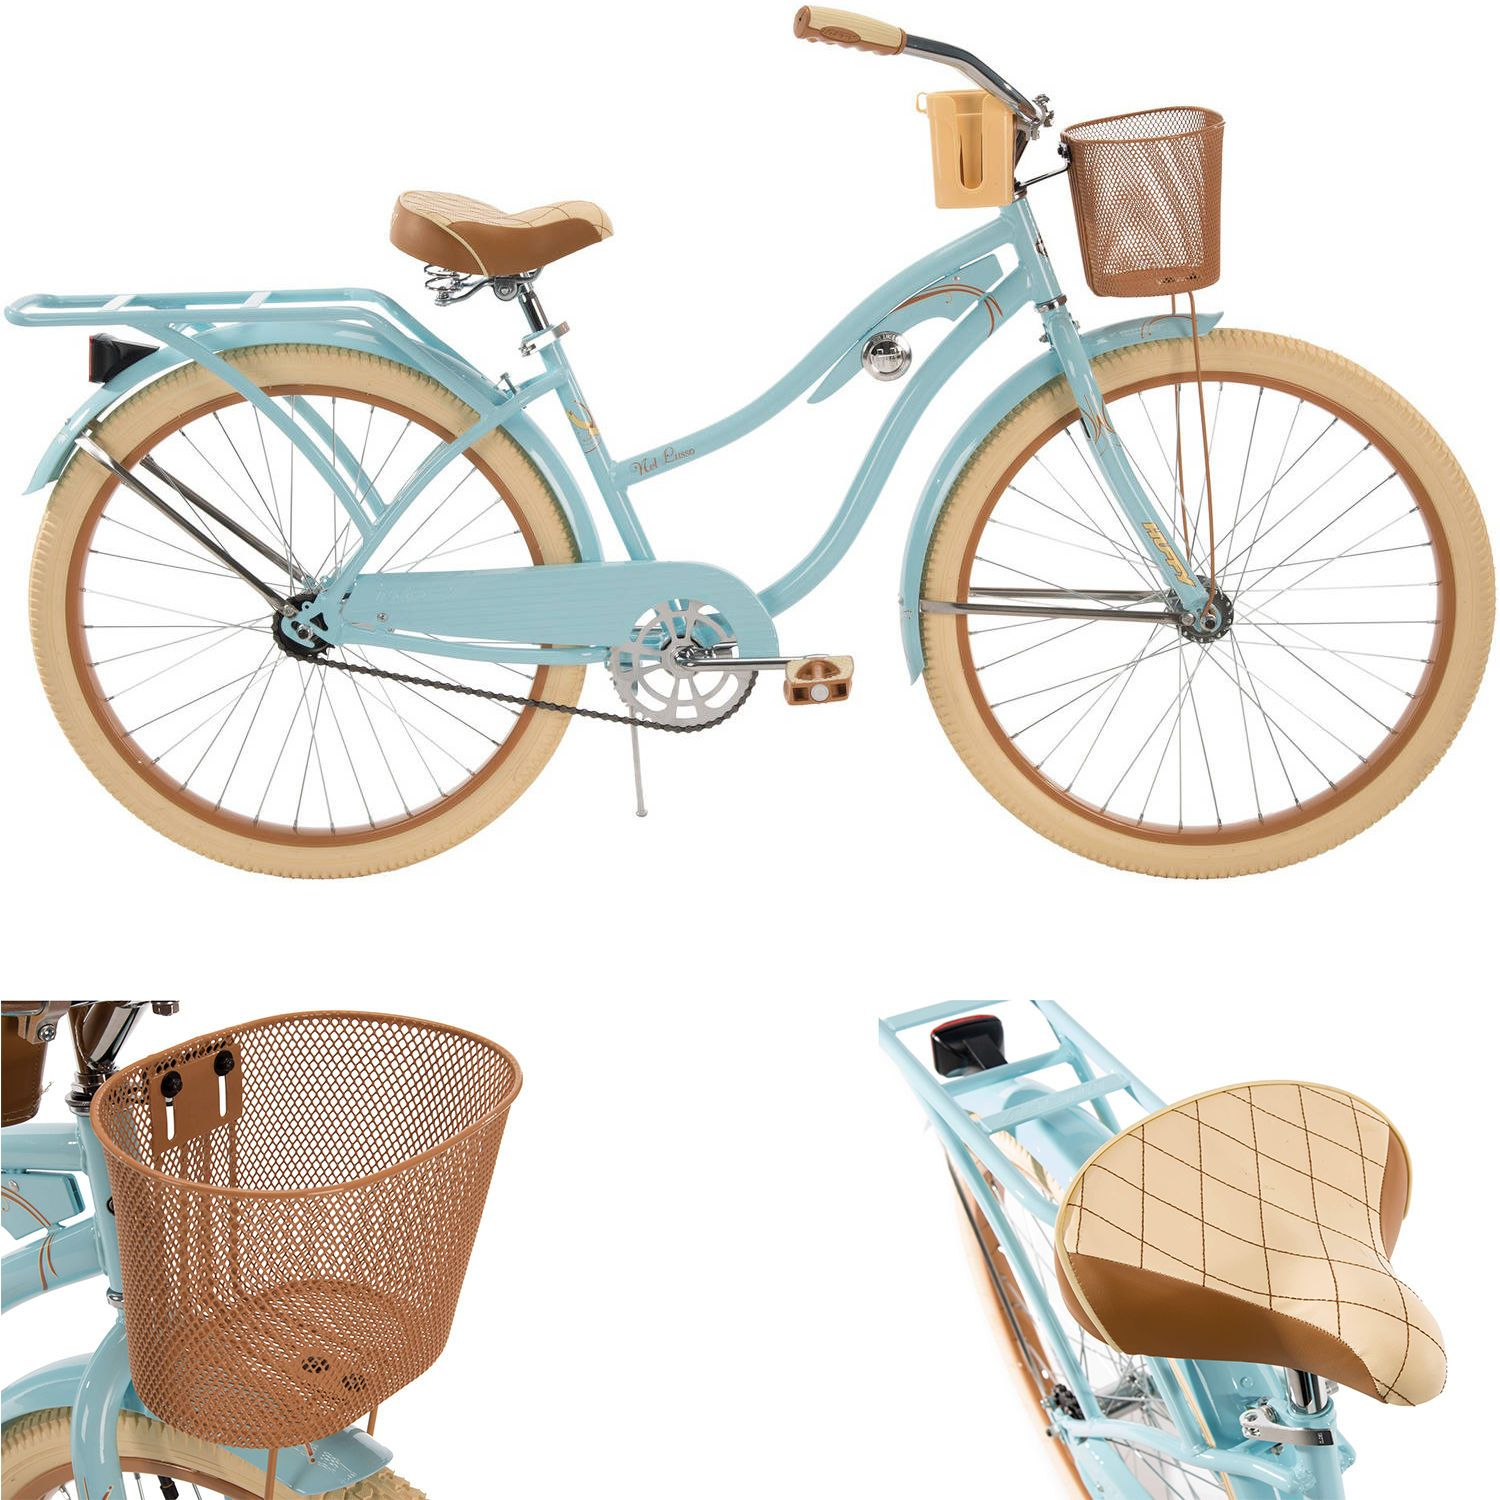 Womens Cruiser Bike 26 Inch Beach Bicycle Cycling Basket Comfortable Huffy Blue Beach Bicycle Bicycle Bike